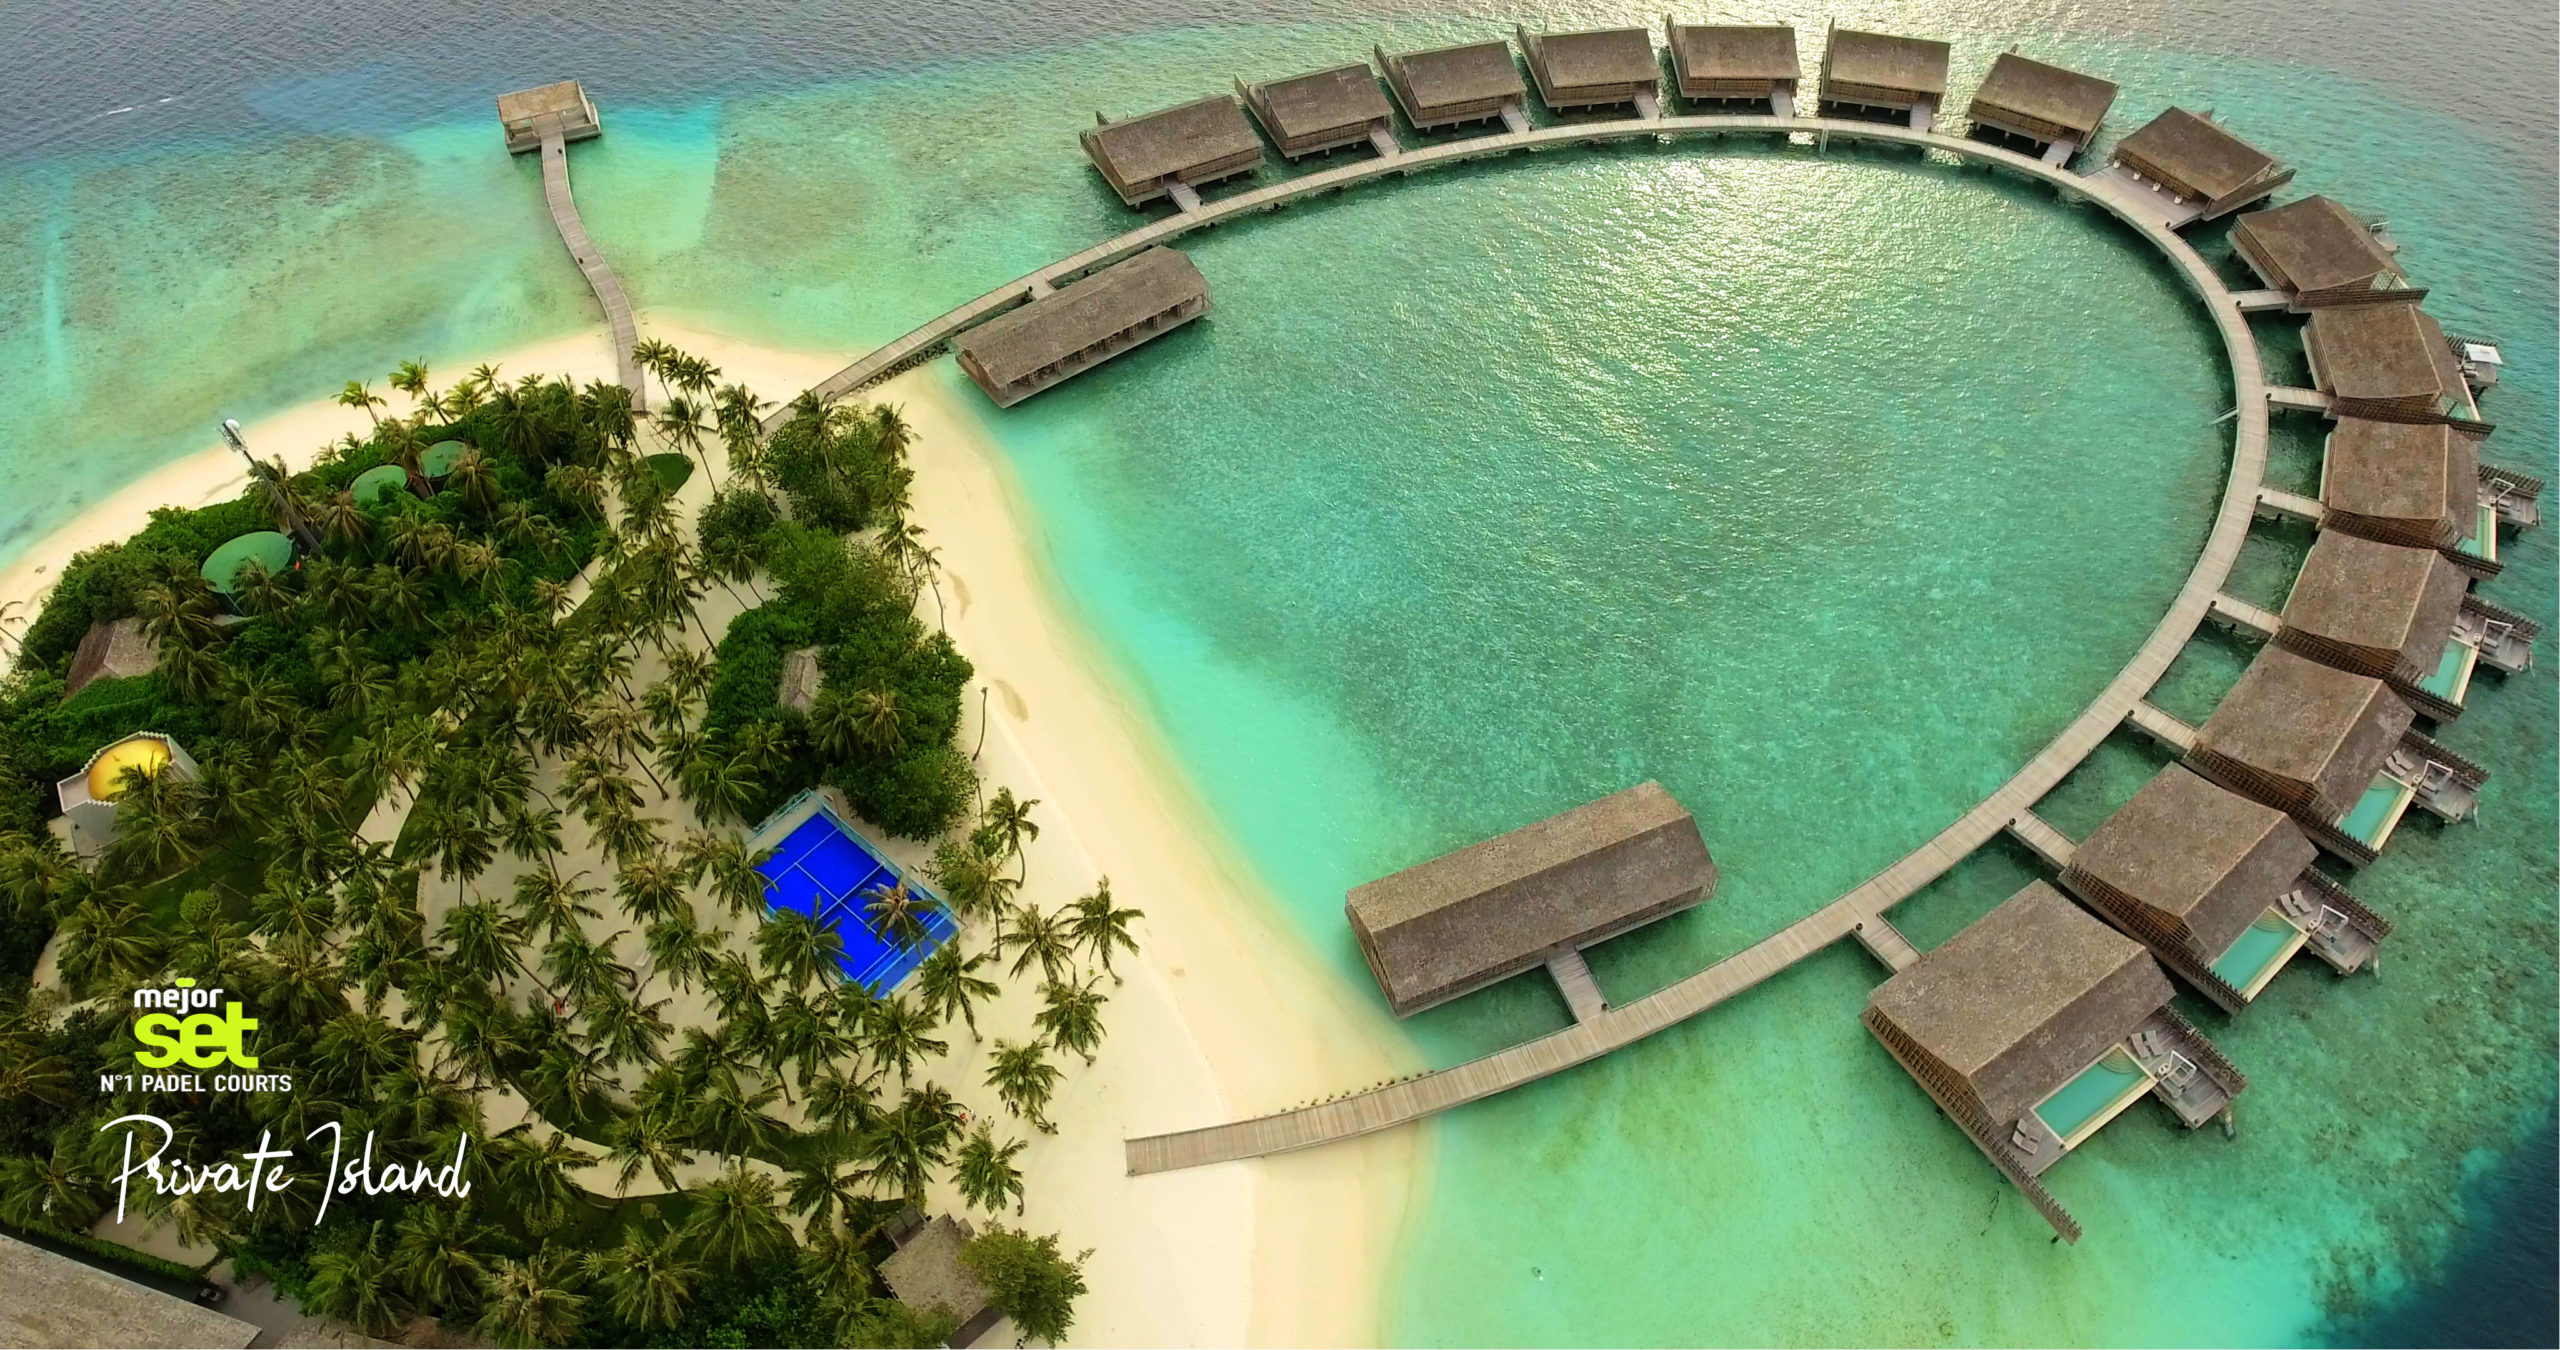 Maldives - Private Island